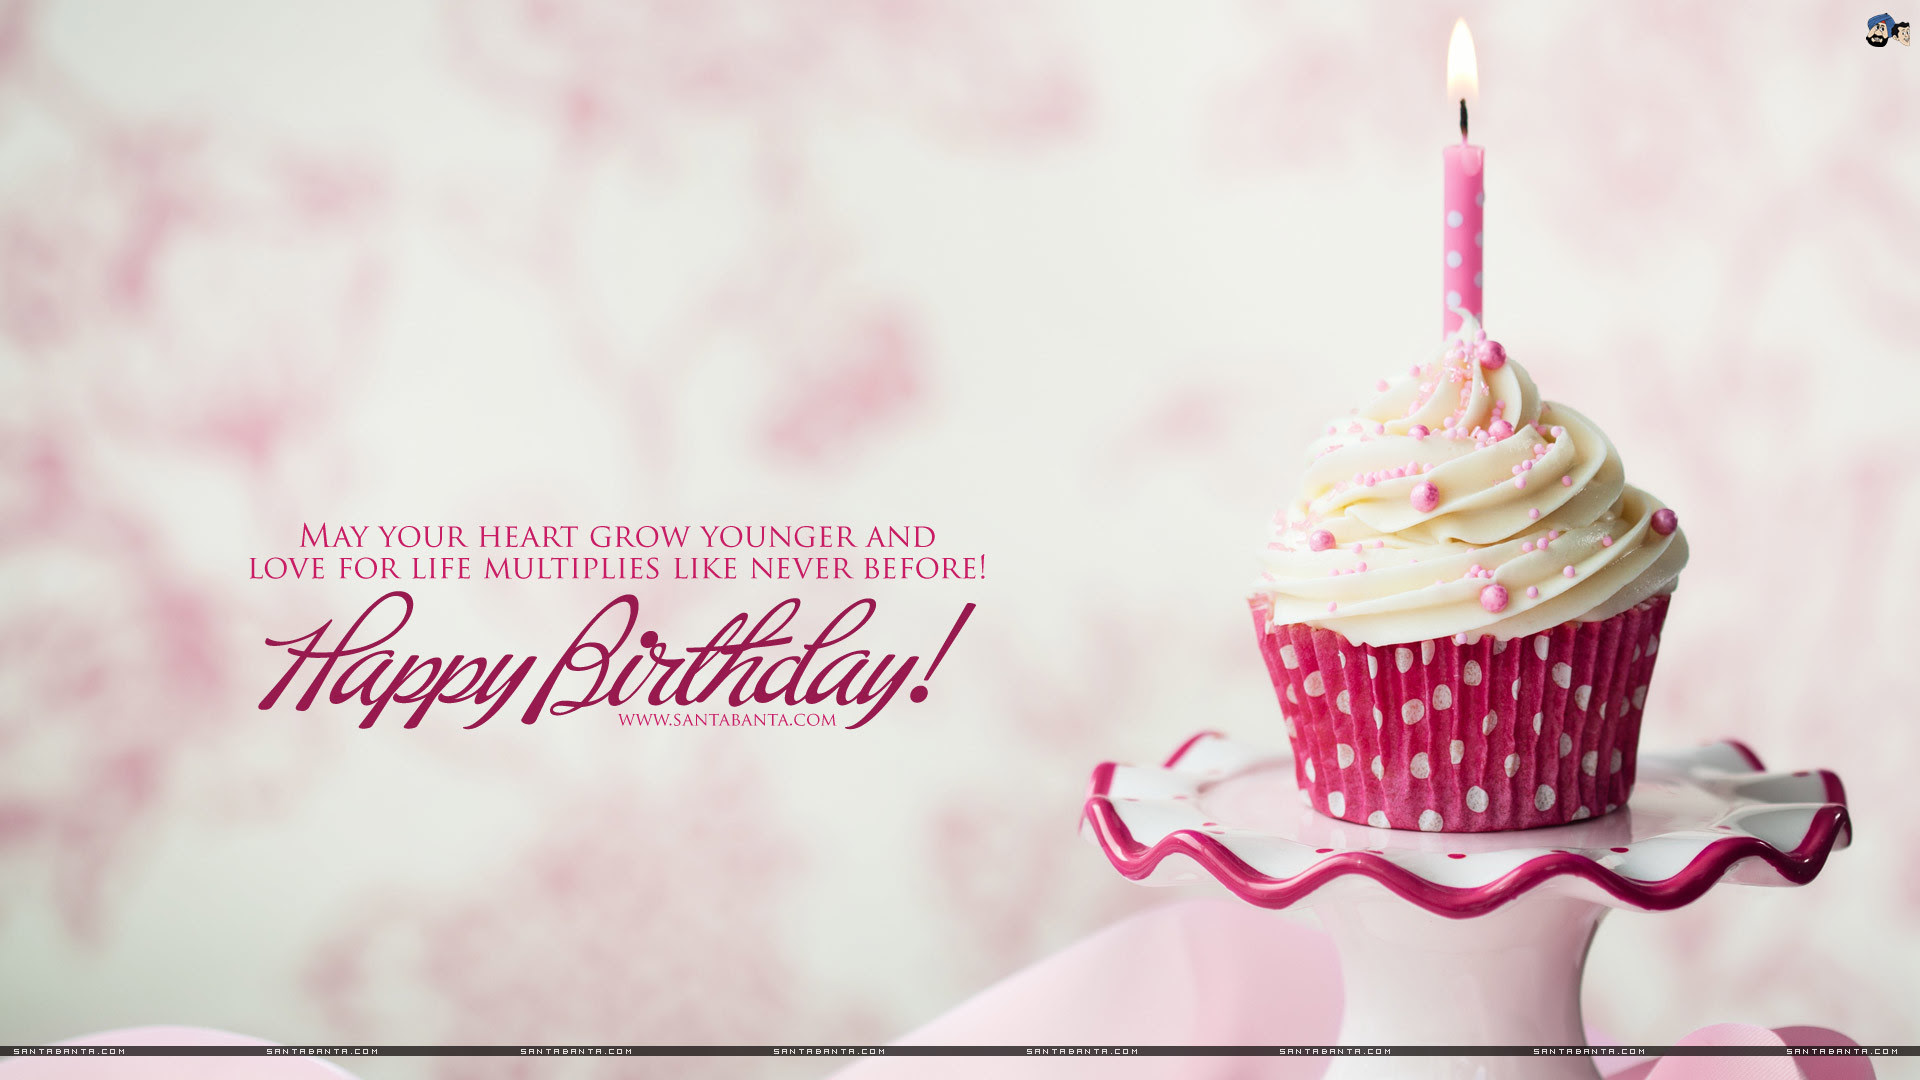 Happy Birthday Wallpapers 59 Images